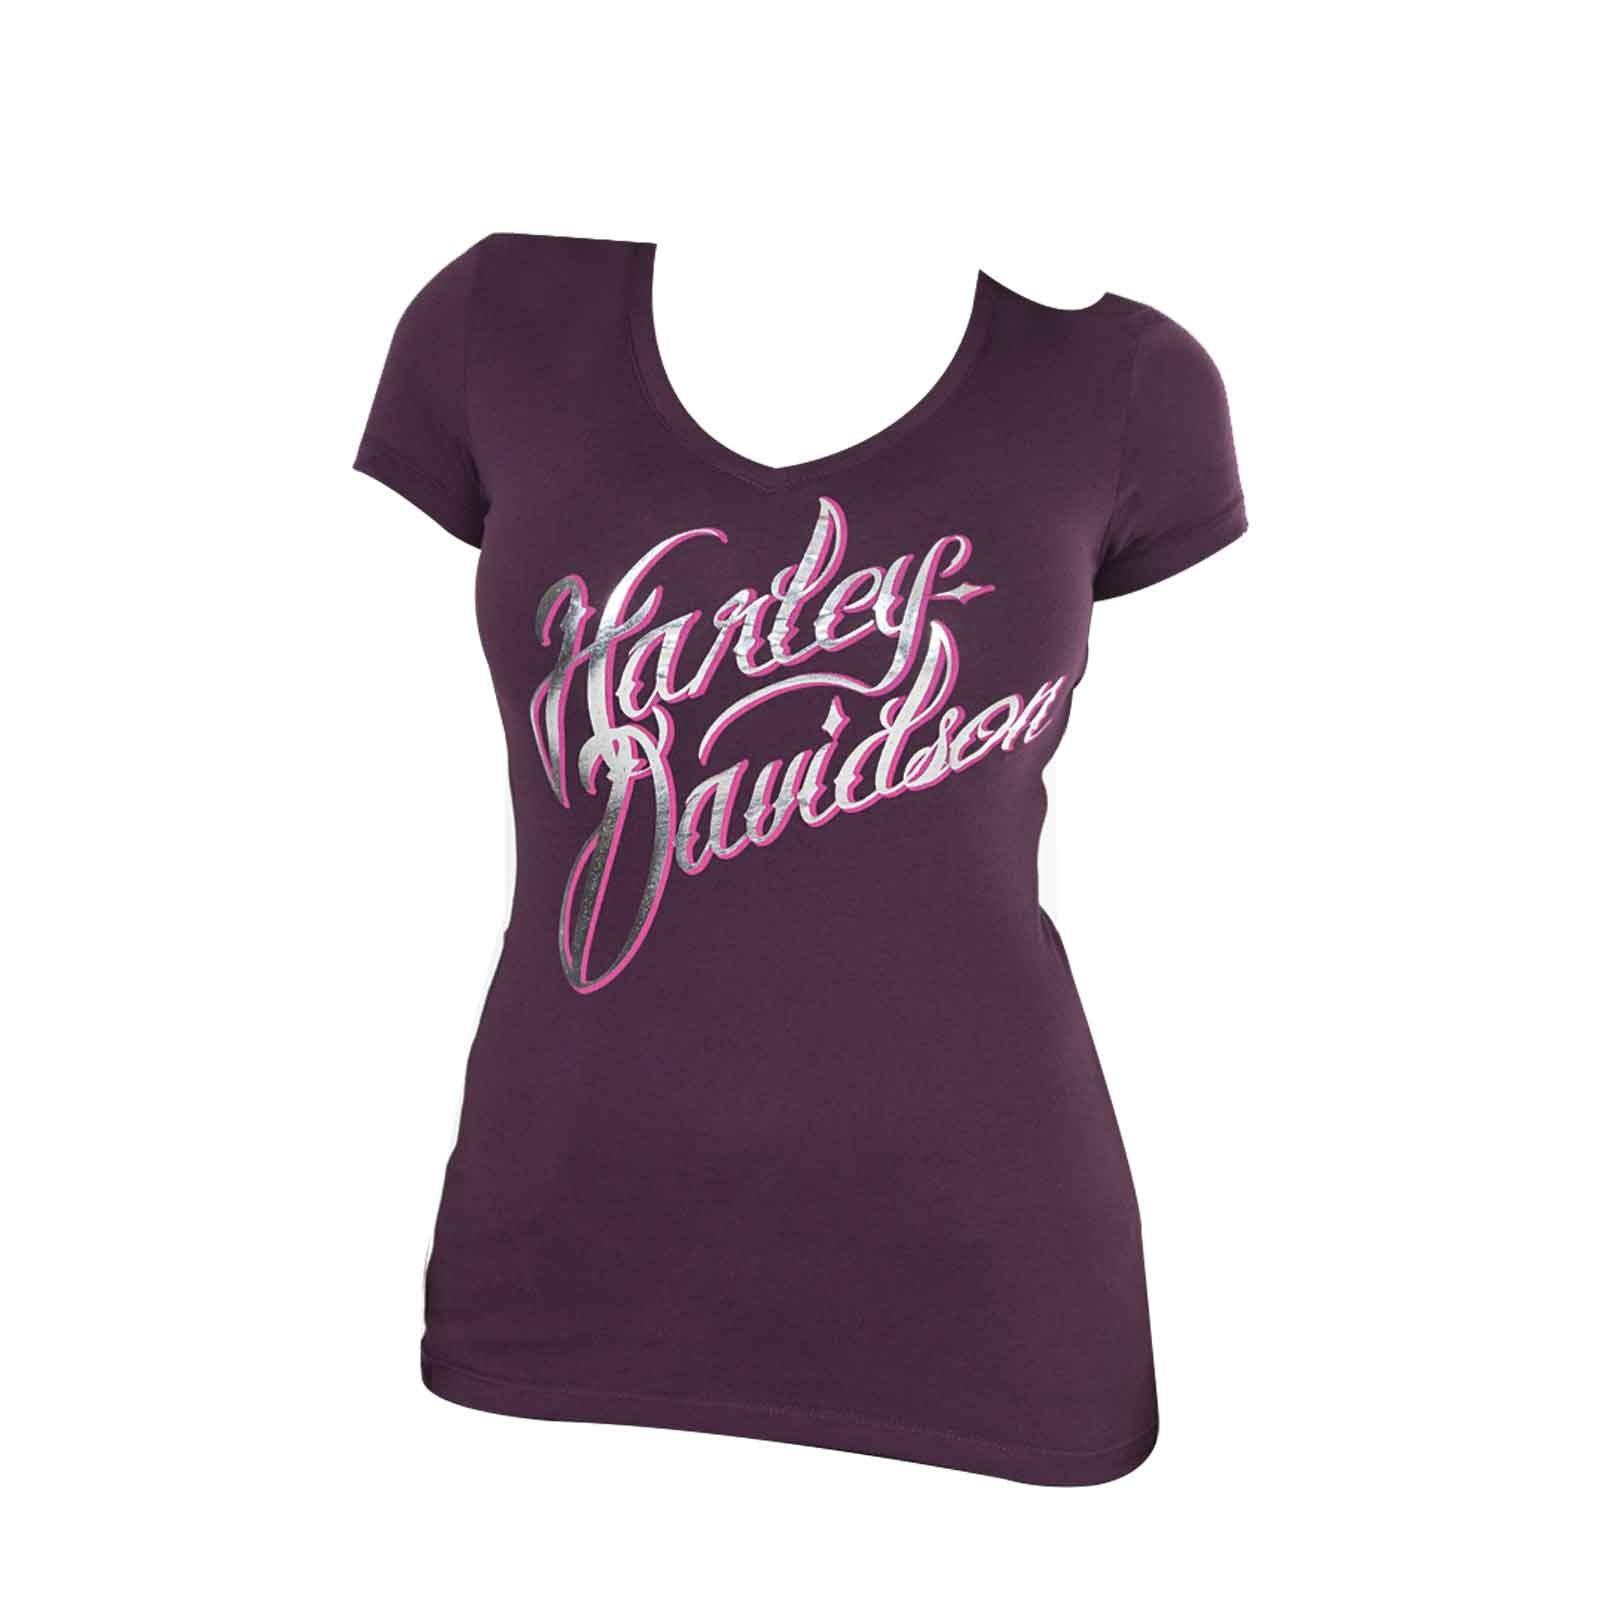 Harley-Davidson Ladies Short-Sleeve V-Neck T-Shirt - Oasis | Al Udeid AB